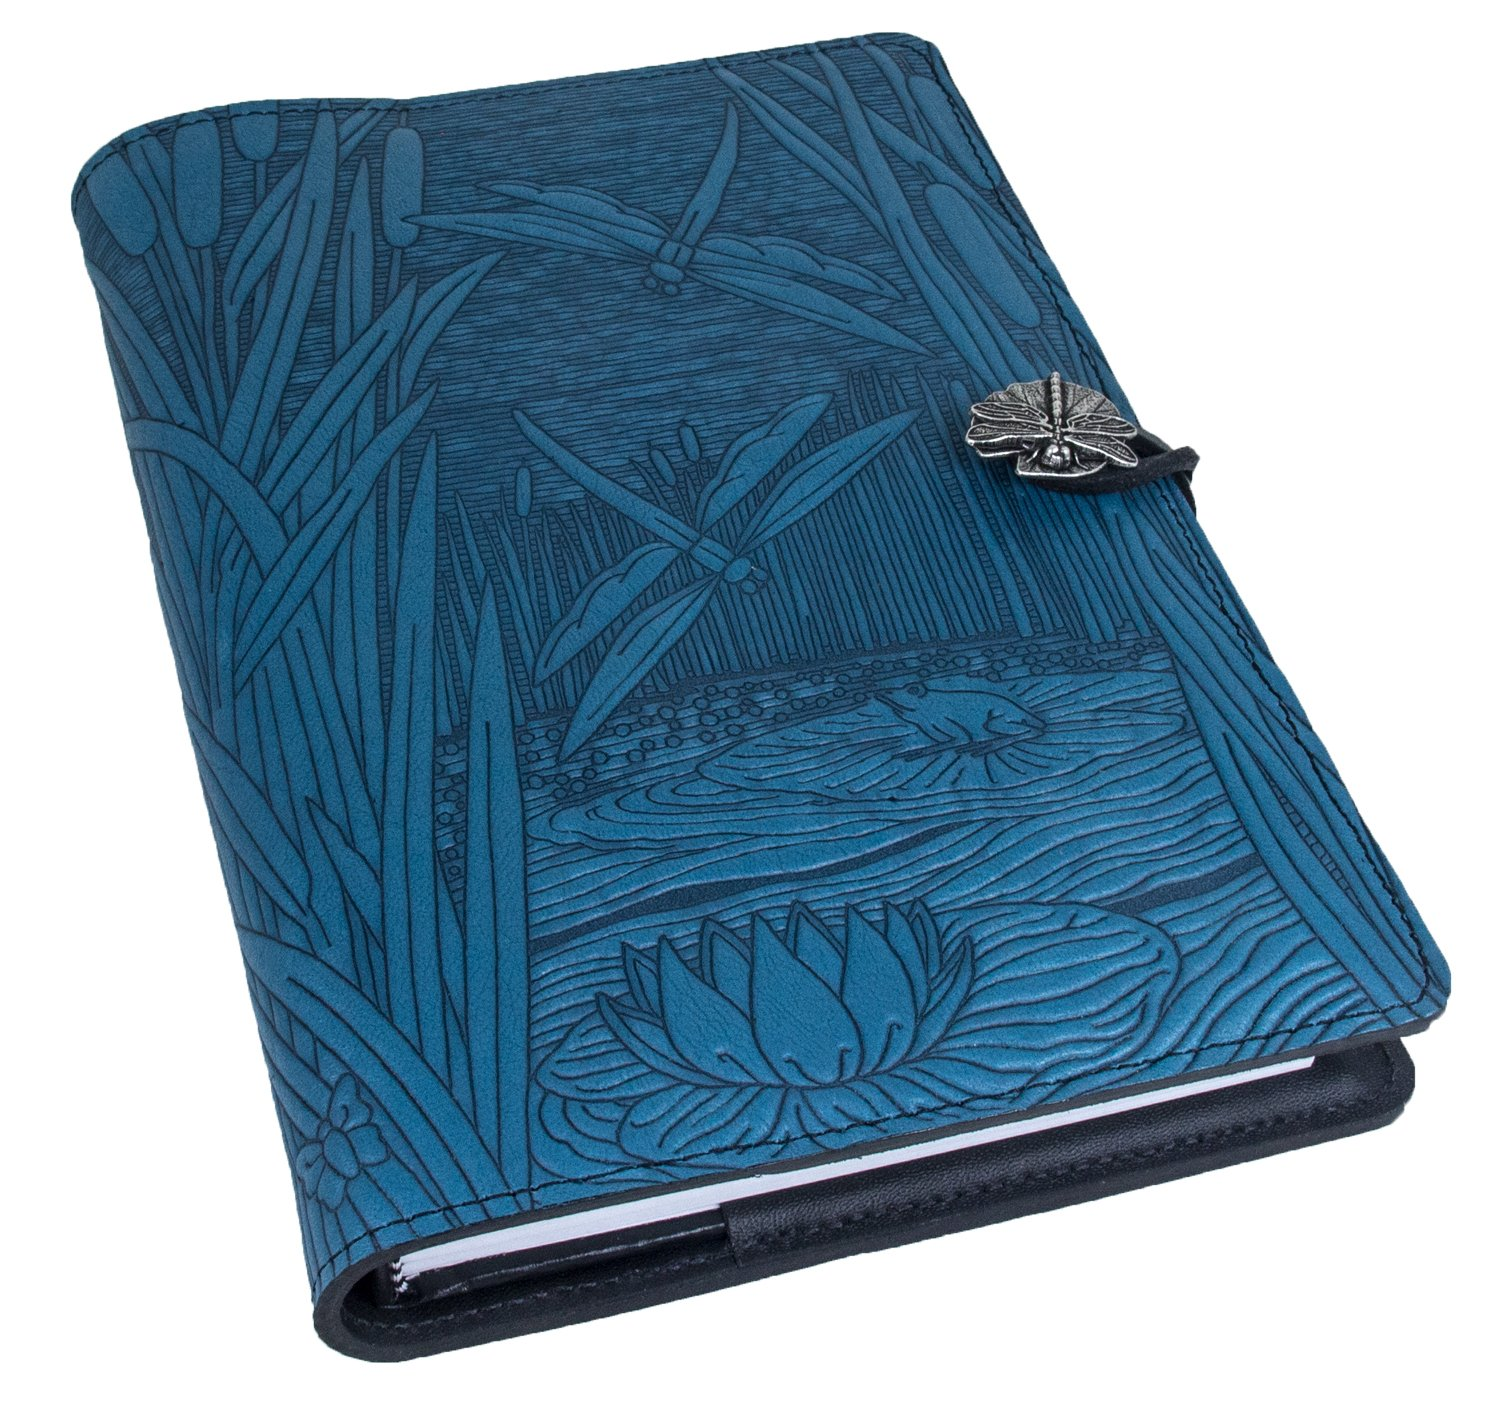 Genuine Leather Refillable Journal Cover + Hardbound Blank Insert - 6x9 Inches - Dragonfly Pond, Sky Blue With Pewter Button - Made in the USA by Oberon Design